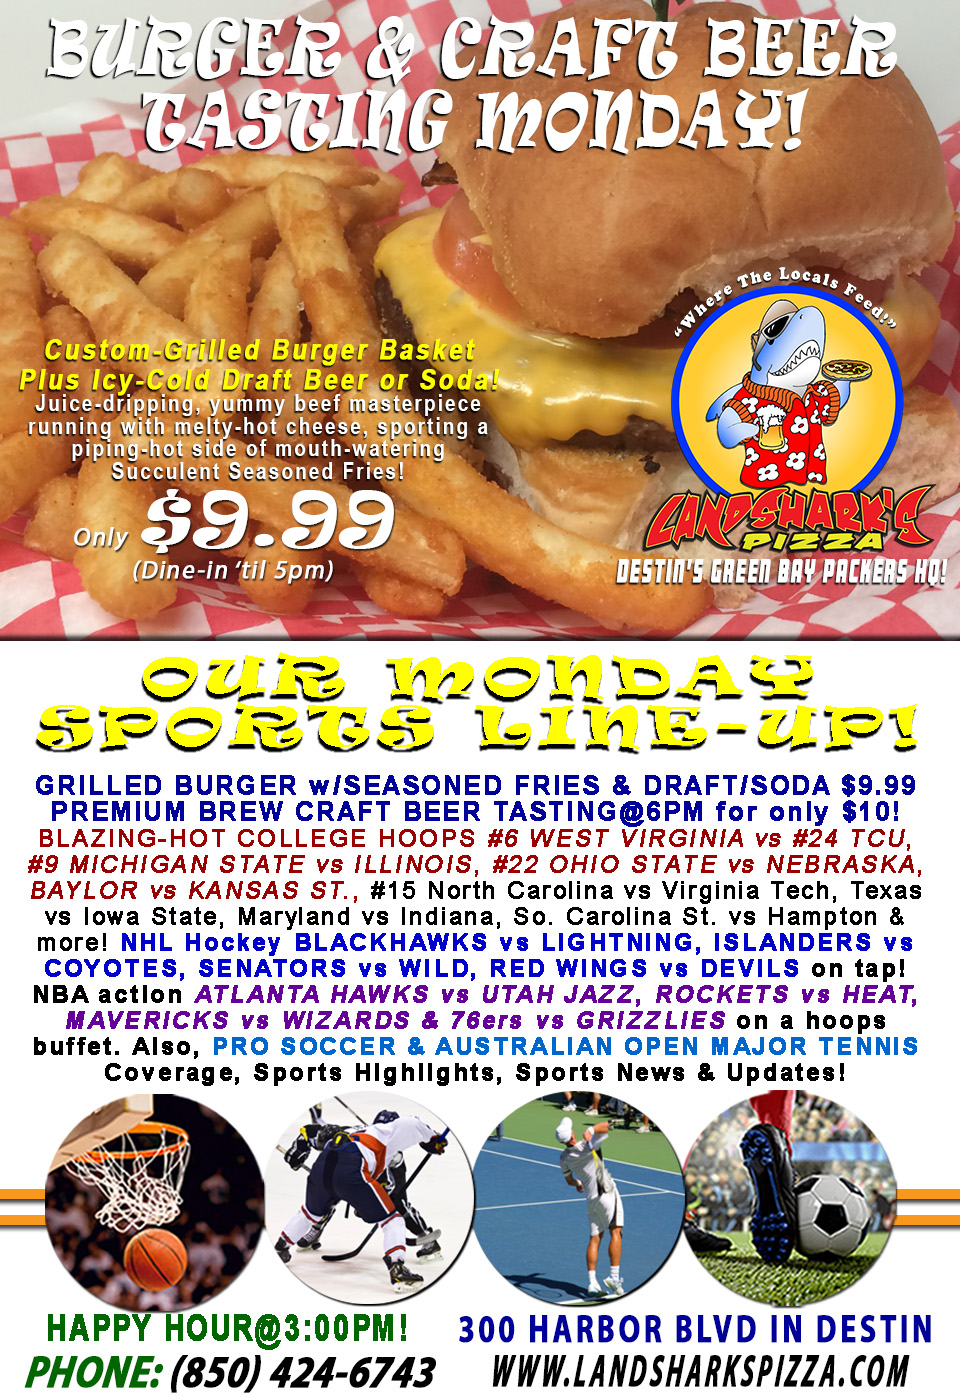 Sizzling Burger & Brew Grubfest Monday Special with College Hoops OHIO STATE vs NEBRASKA|Premium Craft BEER TASTING@6PM!